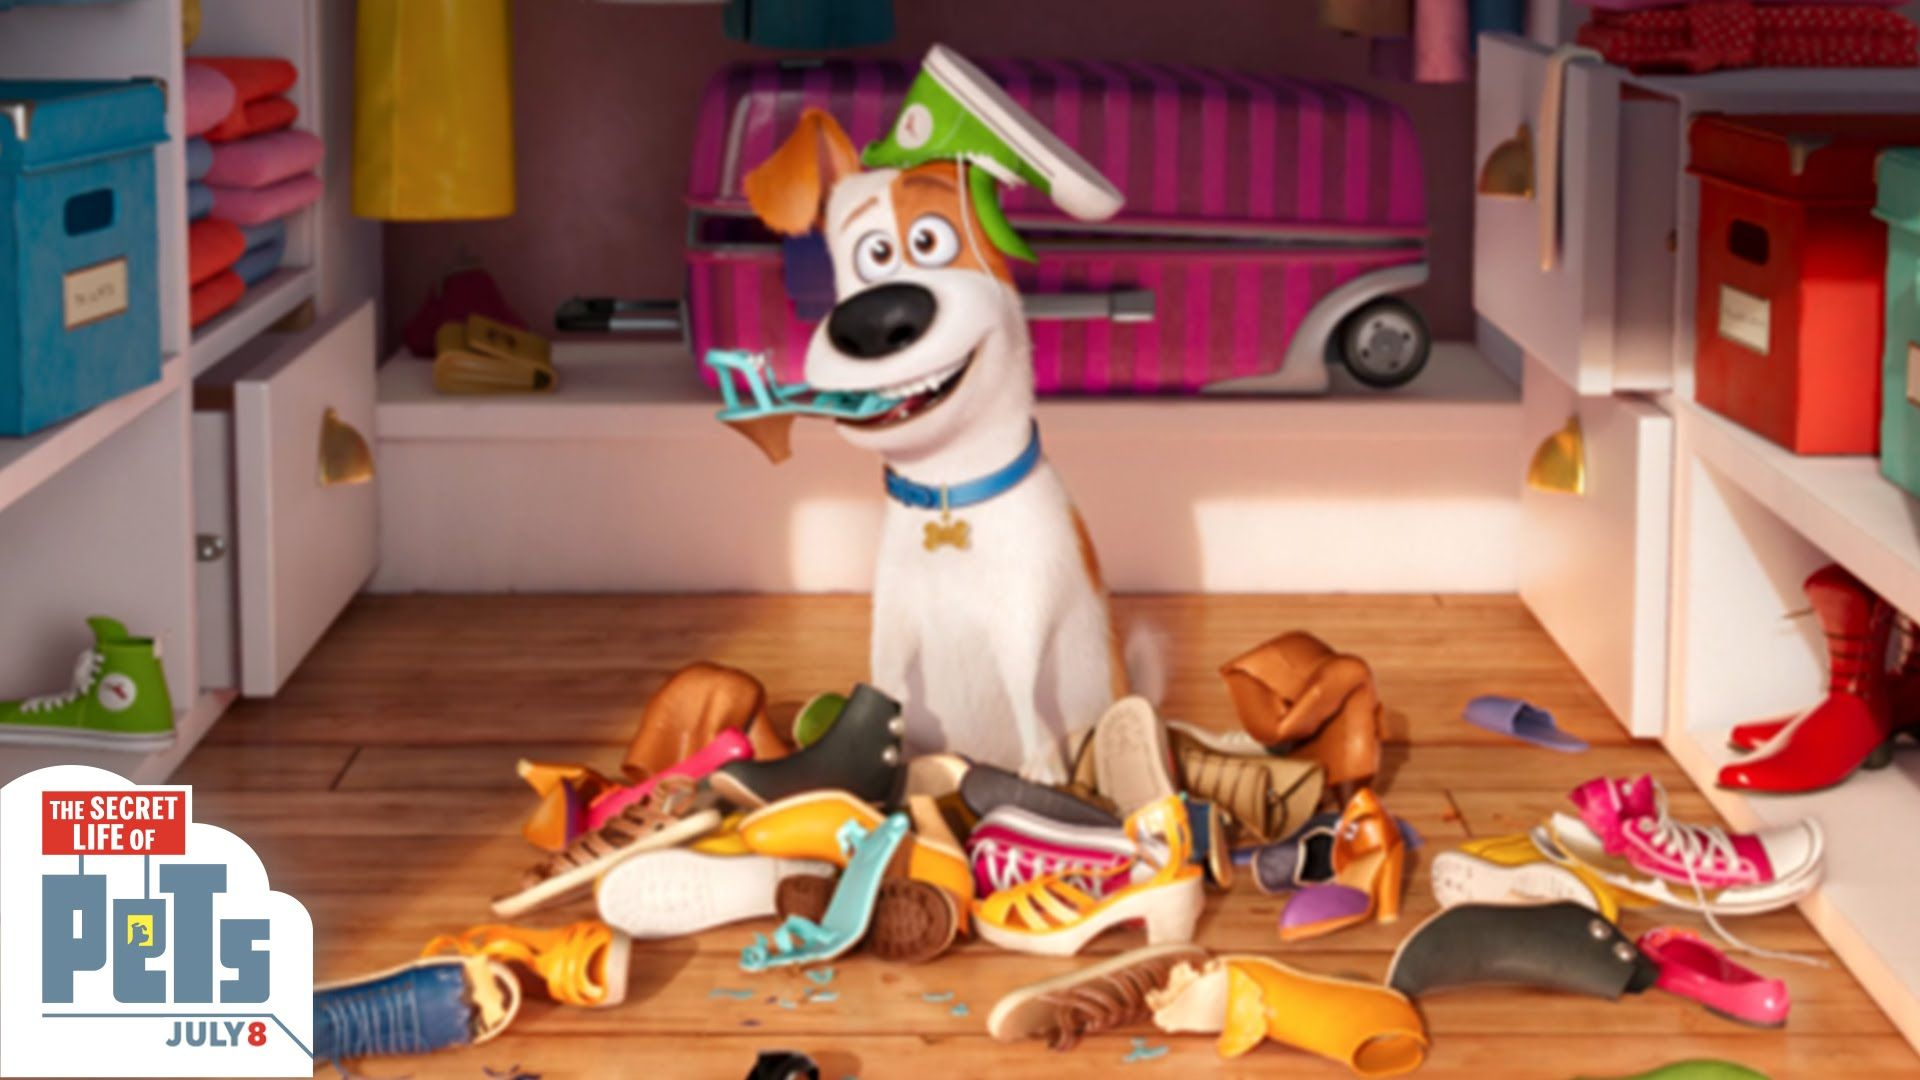 Catch The Cuddly Dogs Max Mel Chloe And Other Pet Friends In Their Natural Habitat Watch This Video For The Secret Lif Secret Life Of Pets Secret Life Pets